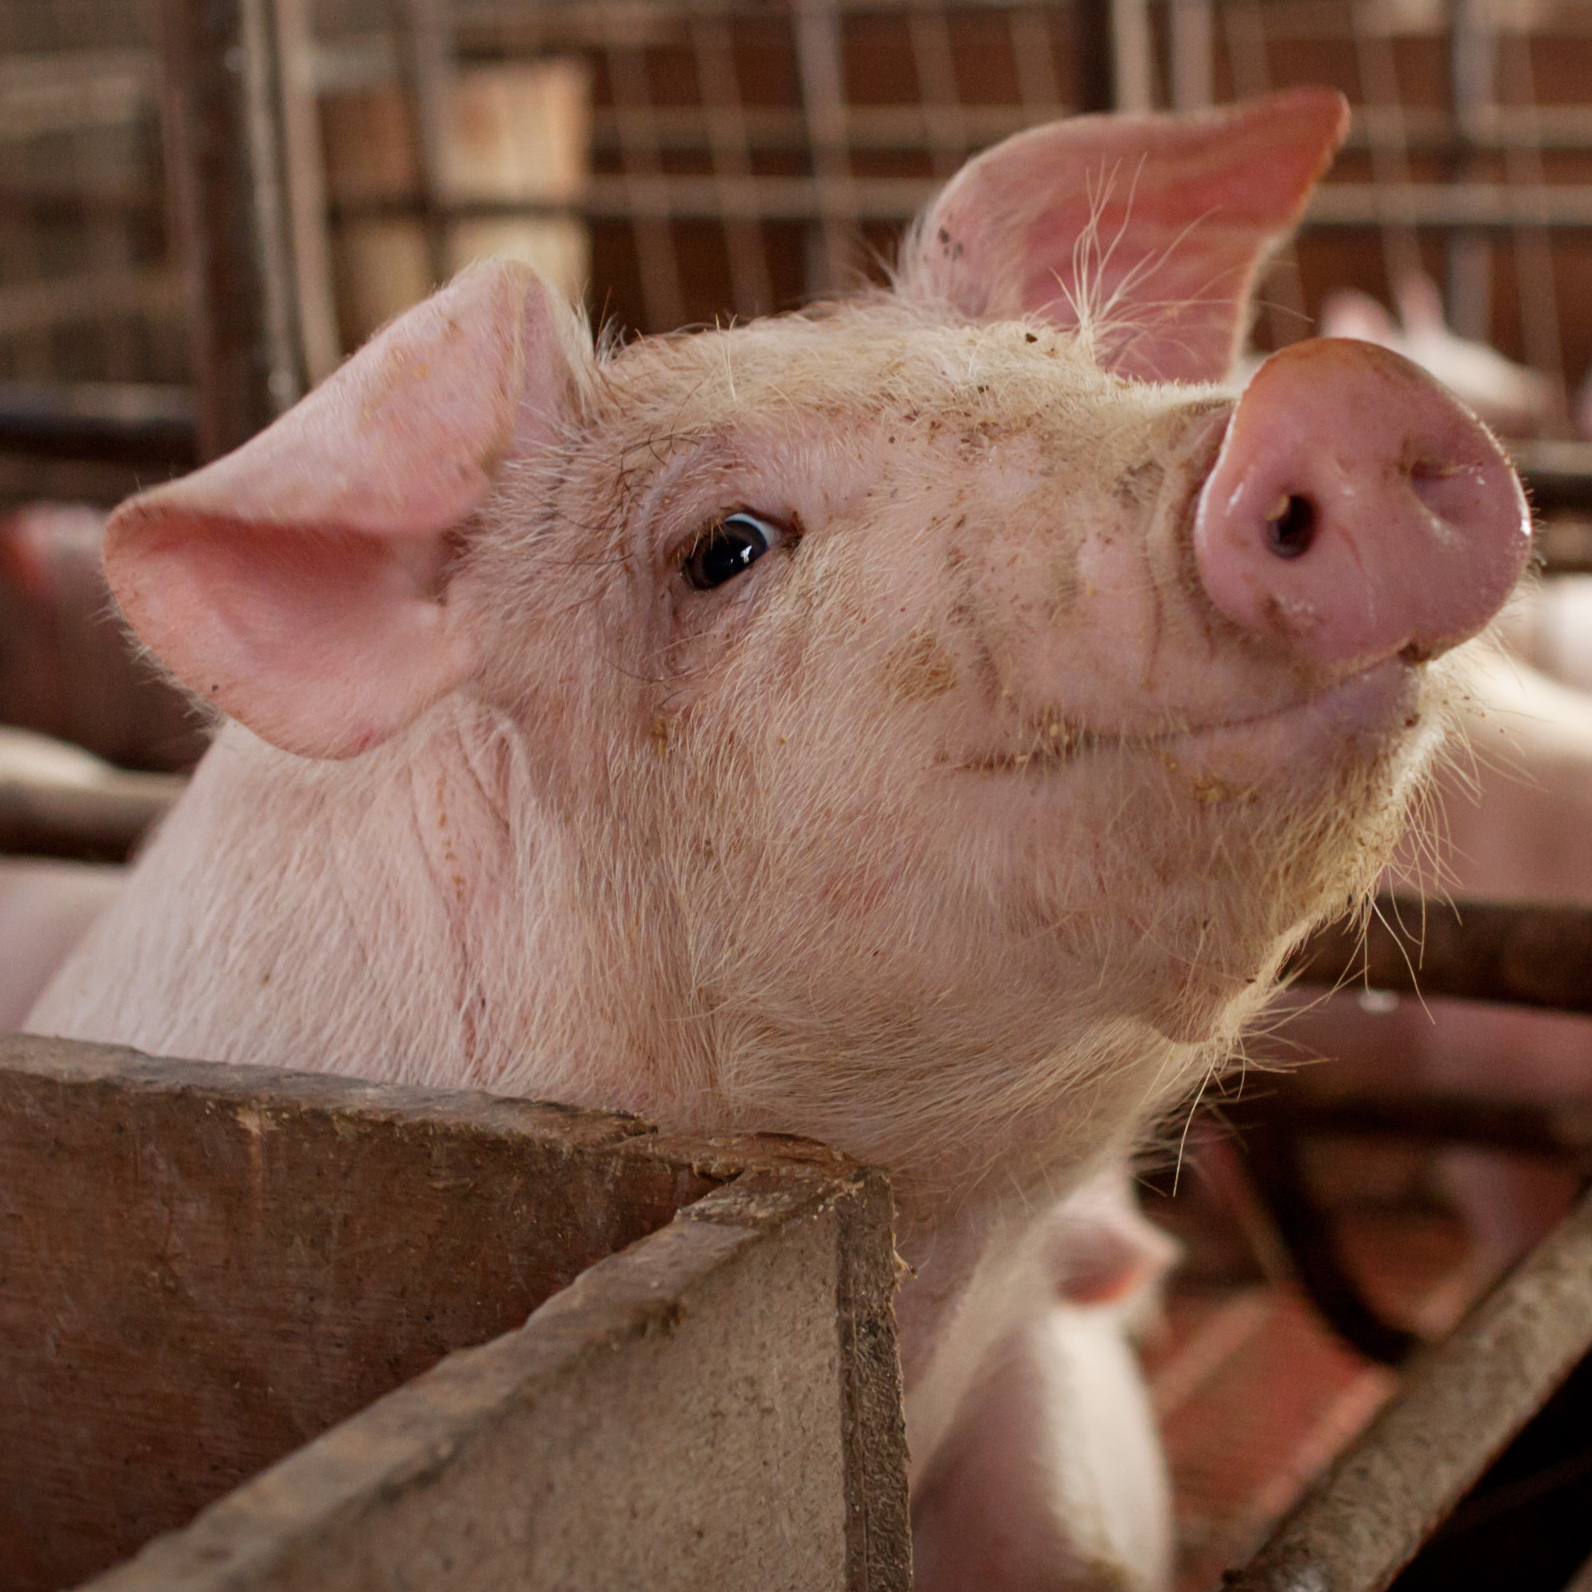 Is it ethical to raise animals for slaughter and consumption?